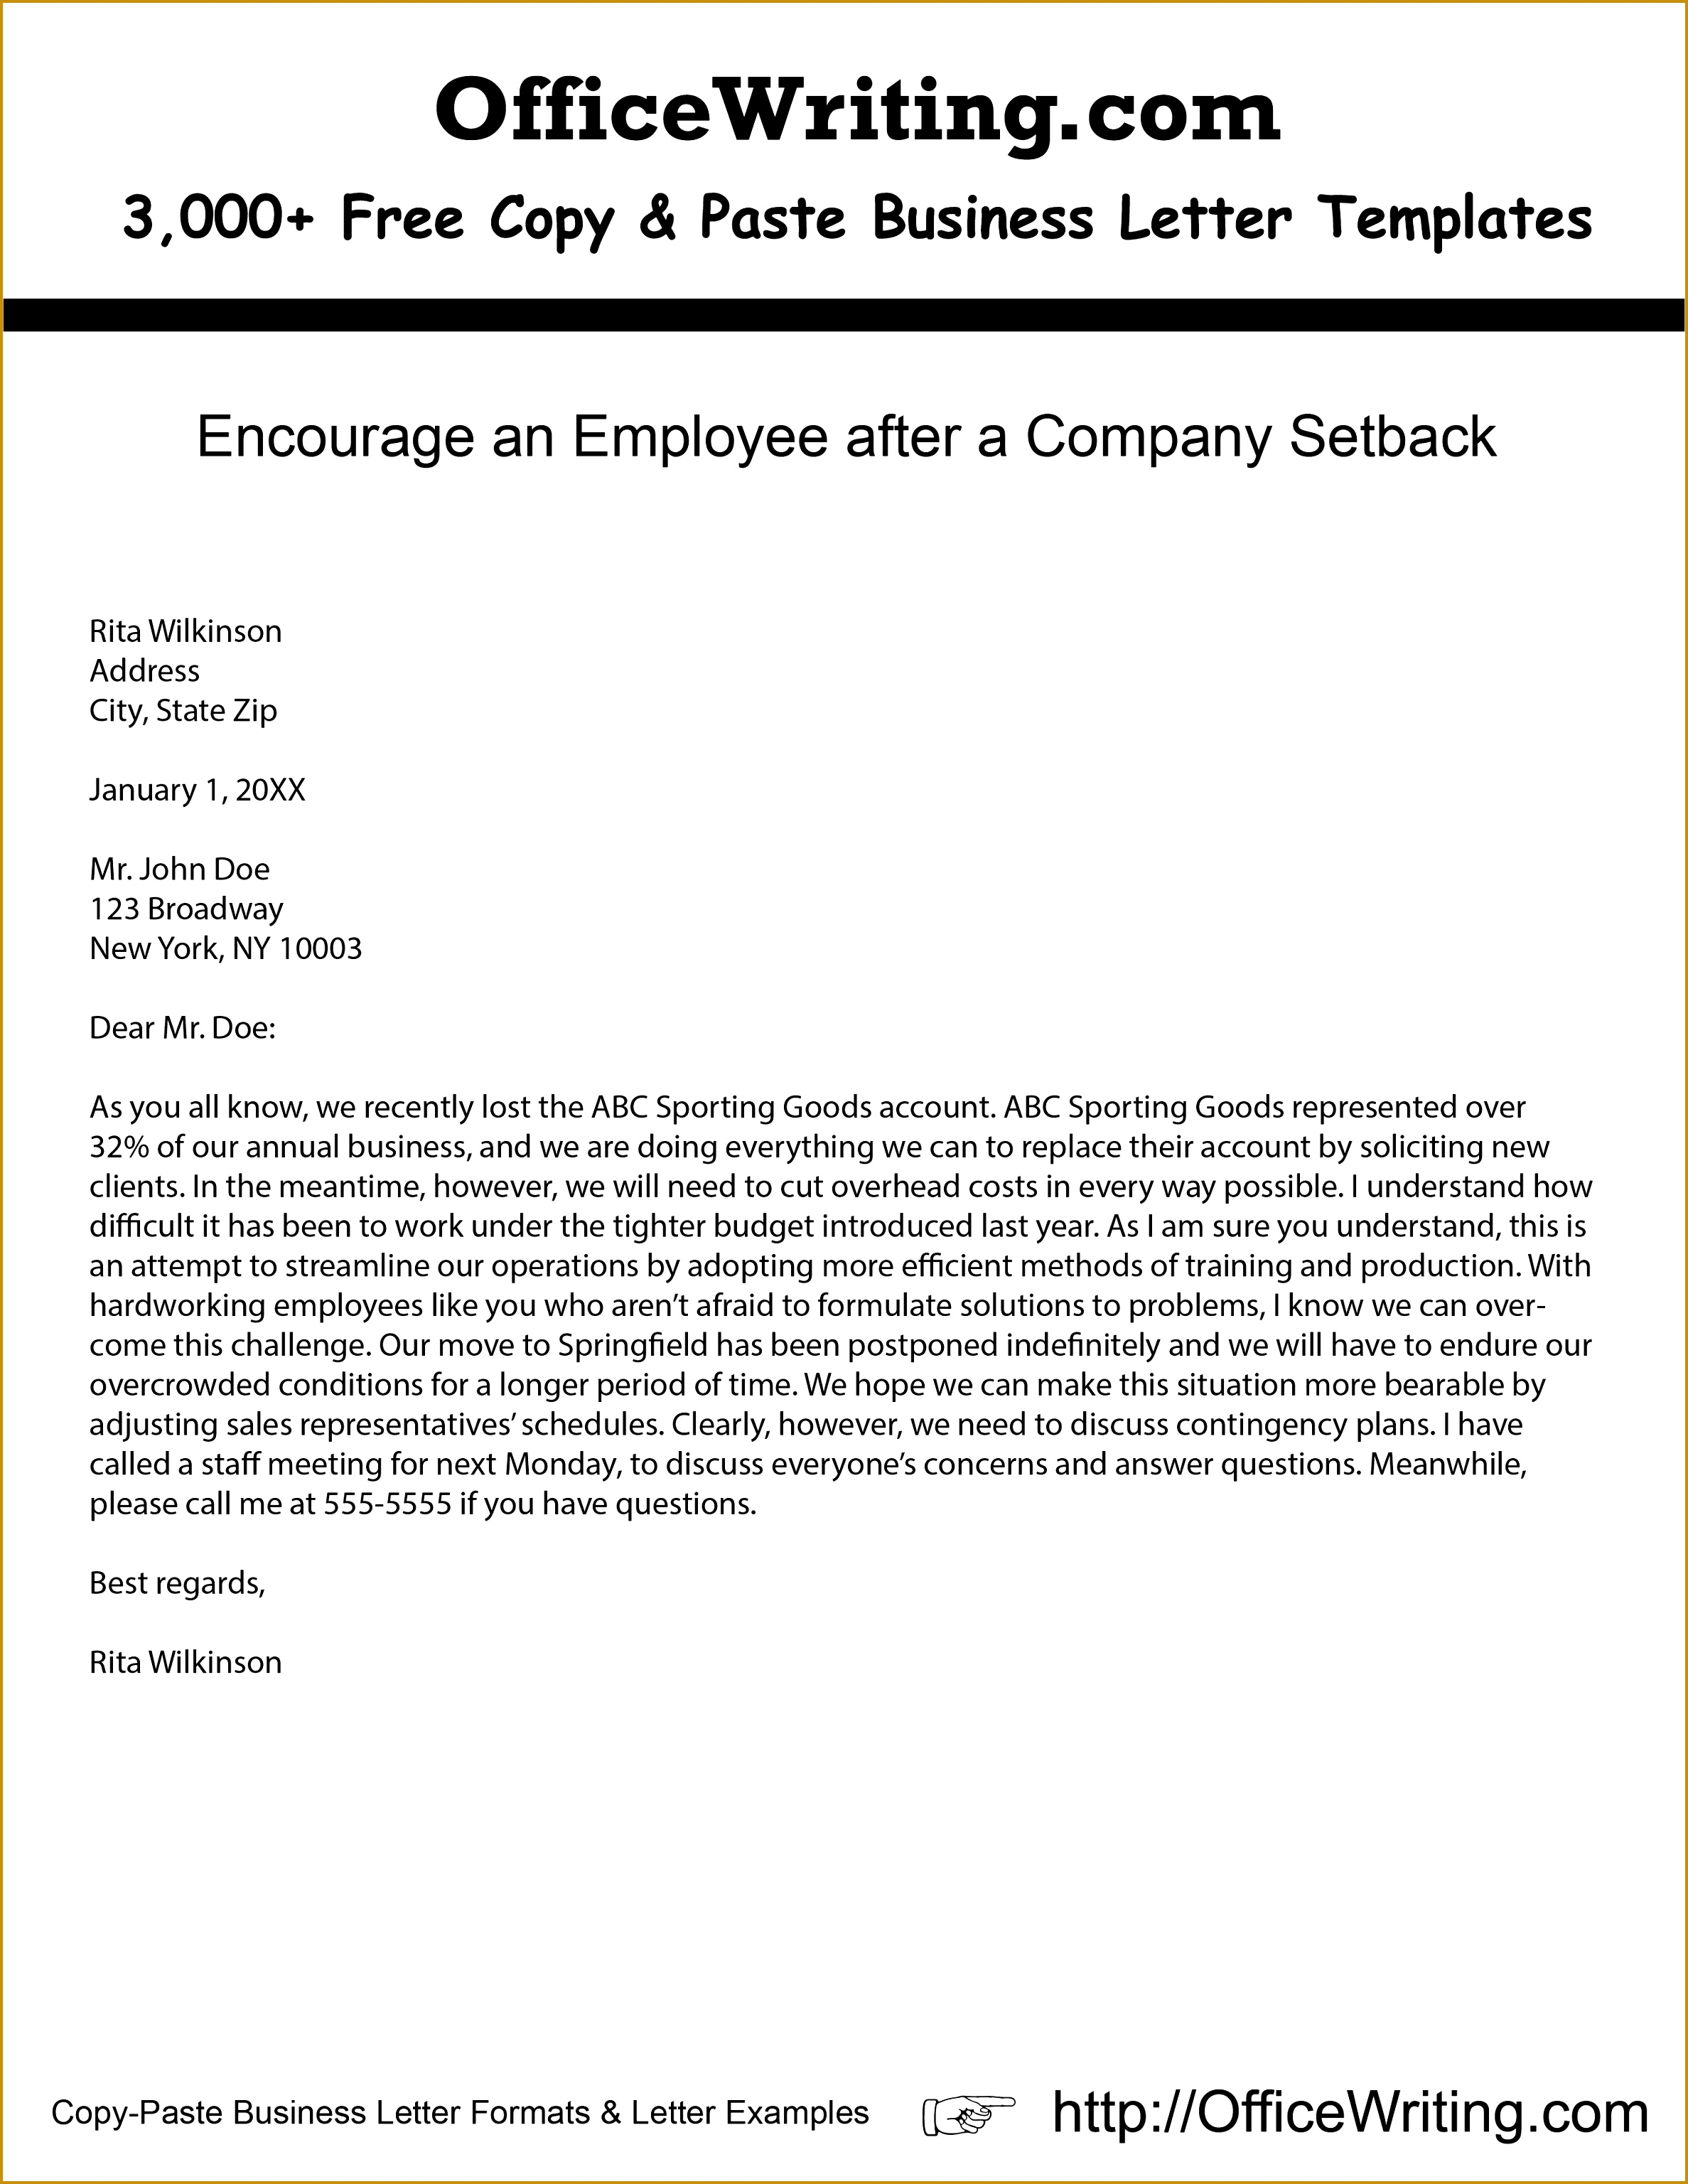 Write Letter To Apply For Job Best Who To Address Cover Letter To New Job Letter 0d Archives Wbxo 30722375